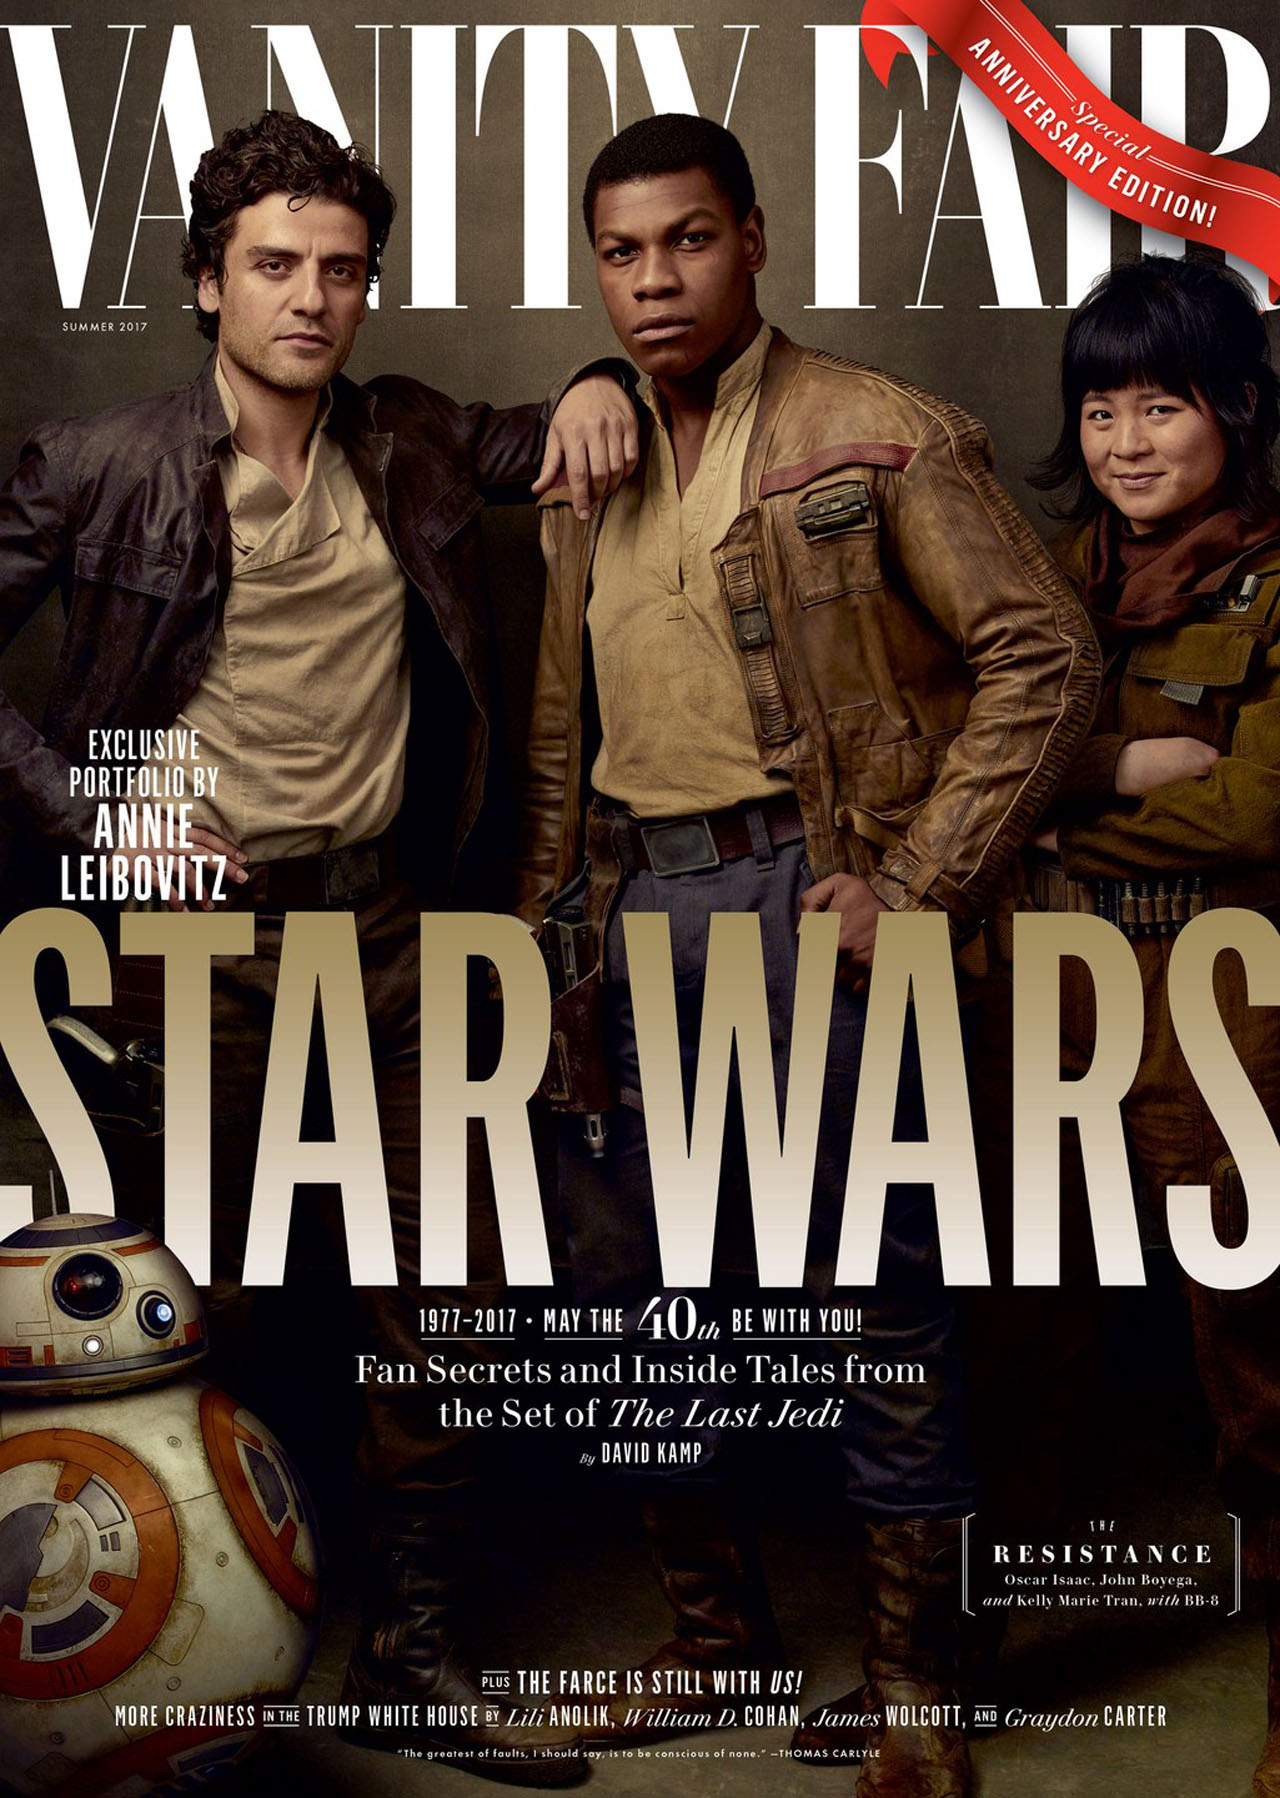 Star Wars The Last Jedi Vanity Fair Covers Released Wel e to